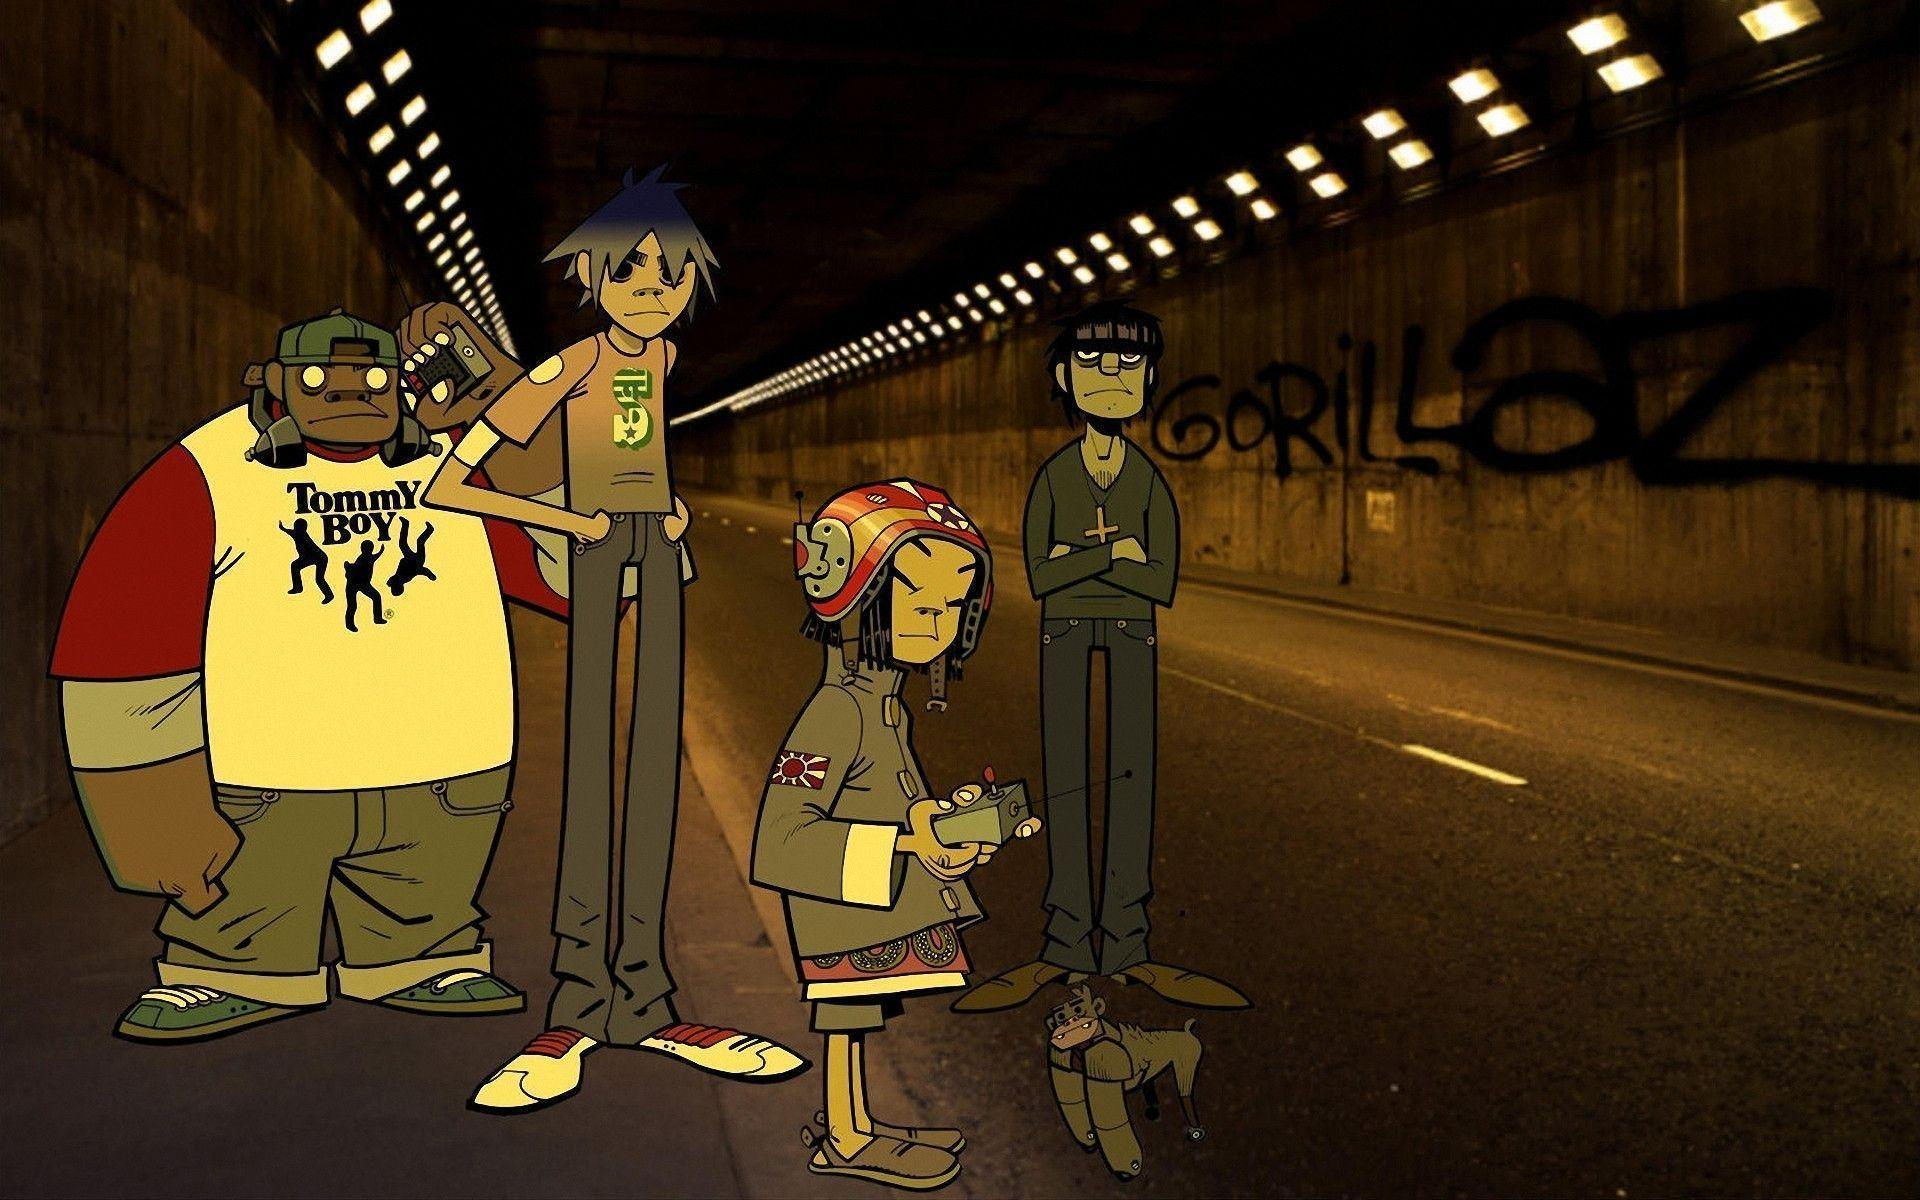 download wallpaper gorillaz desktop - photo #16